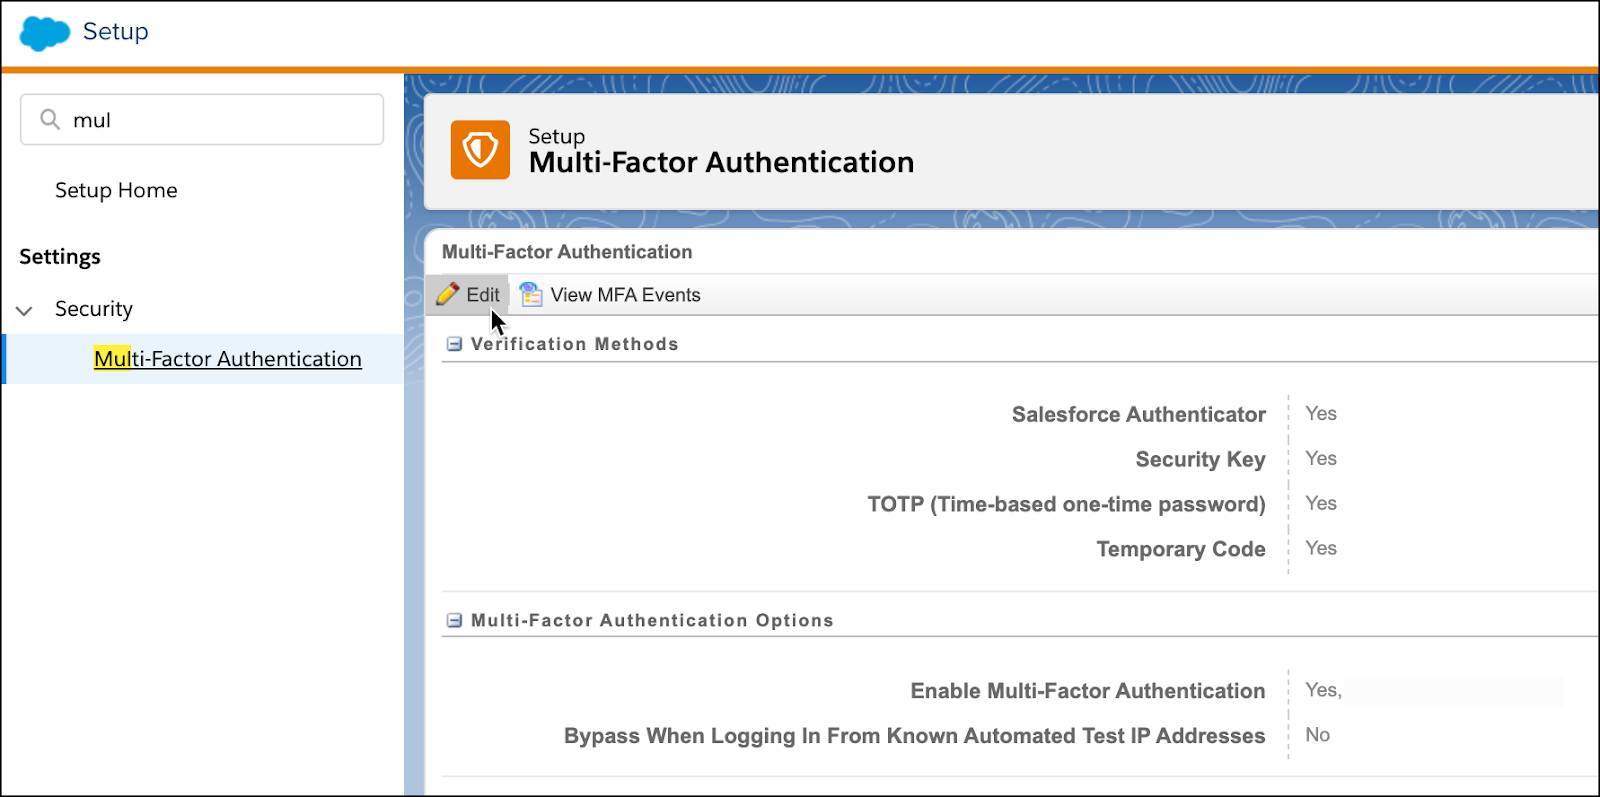 Multi-factor authentication in Setup settings.